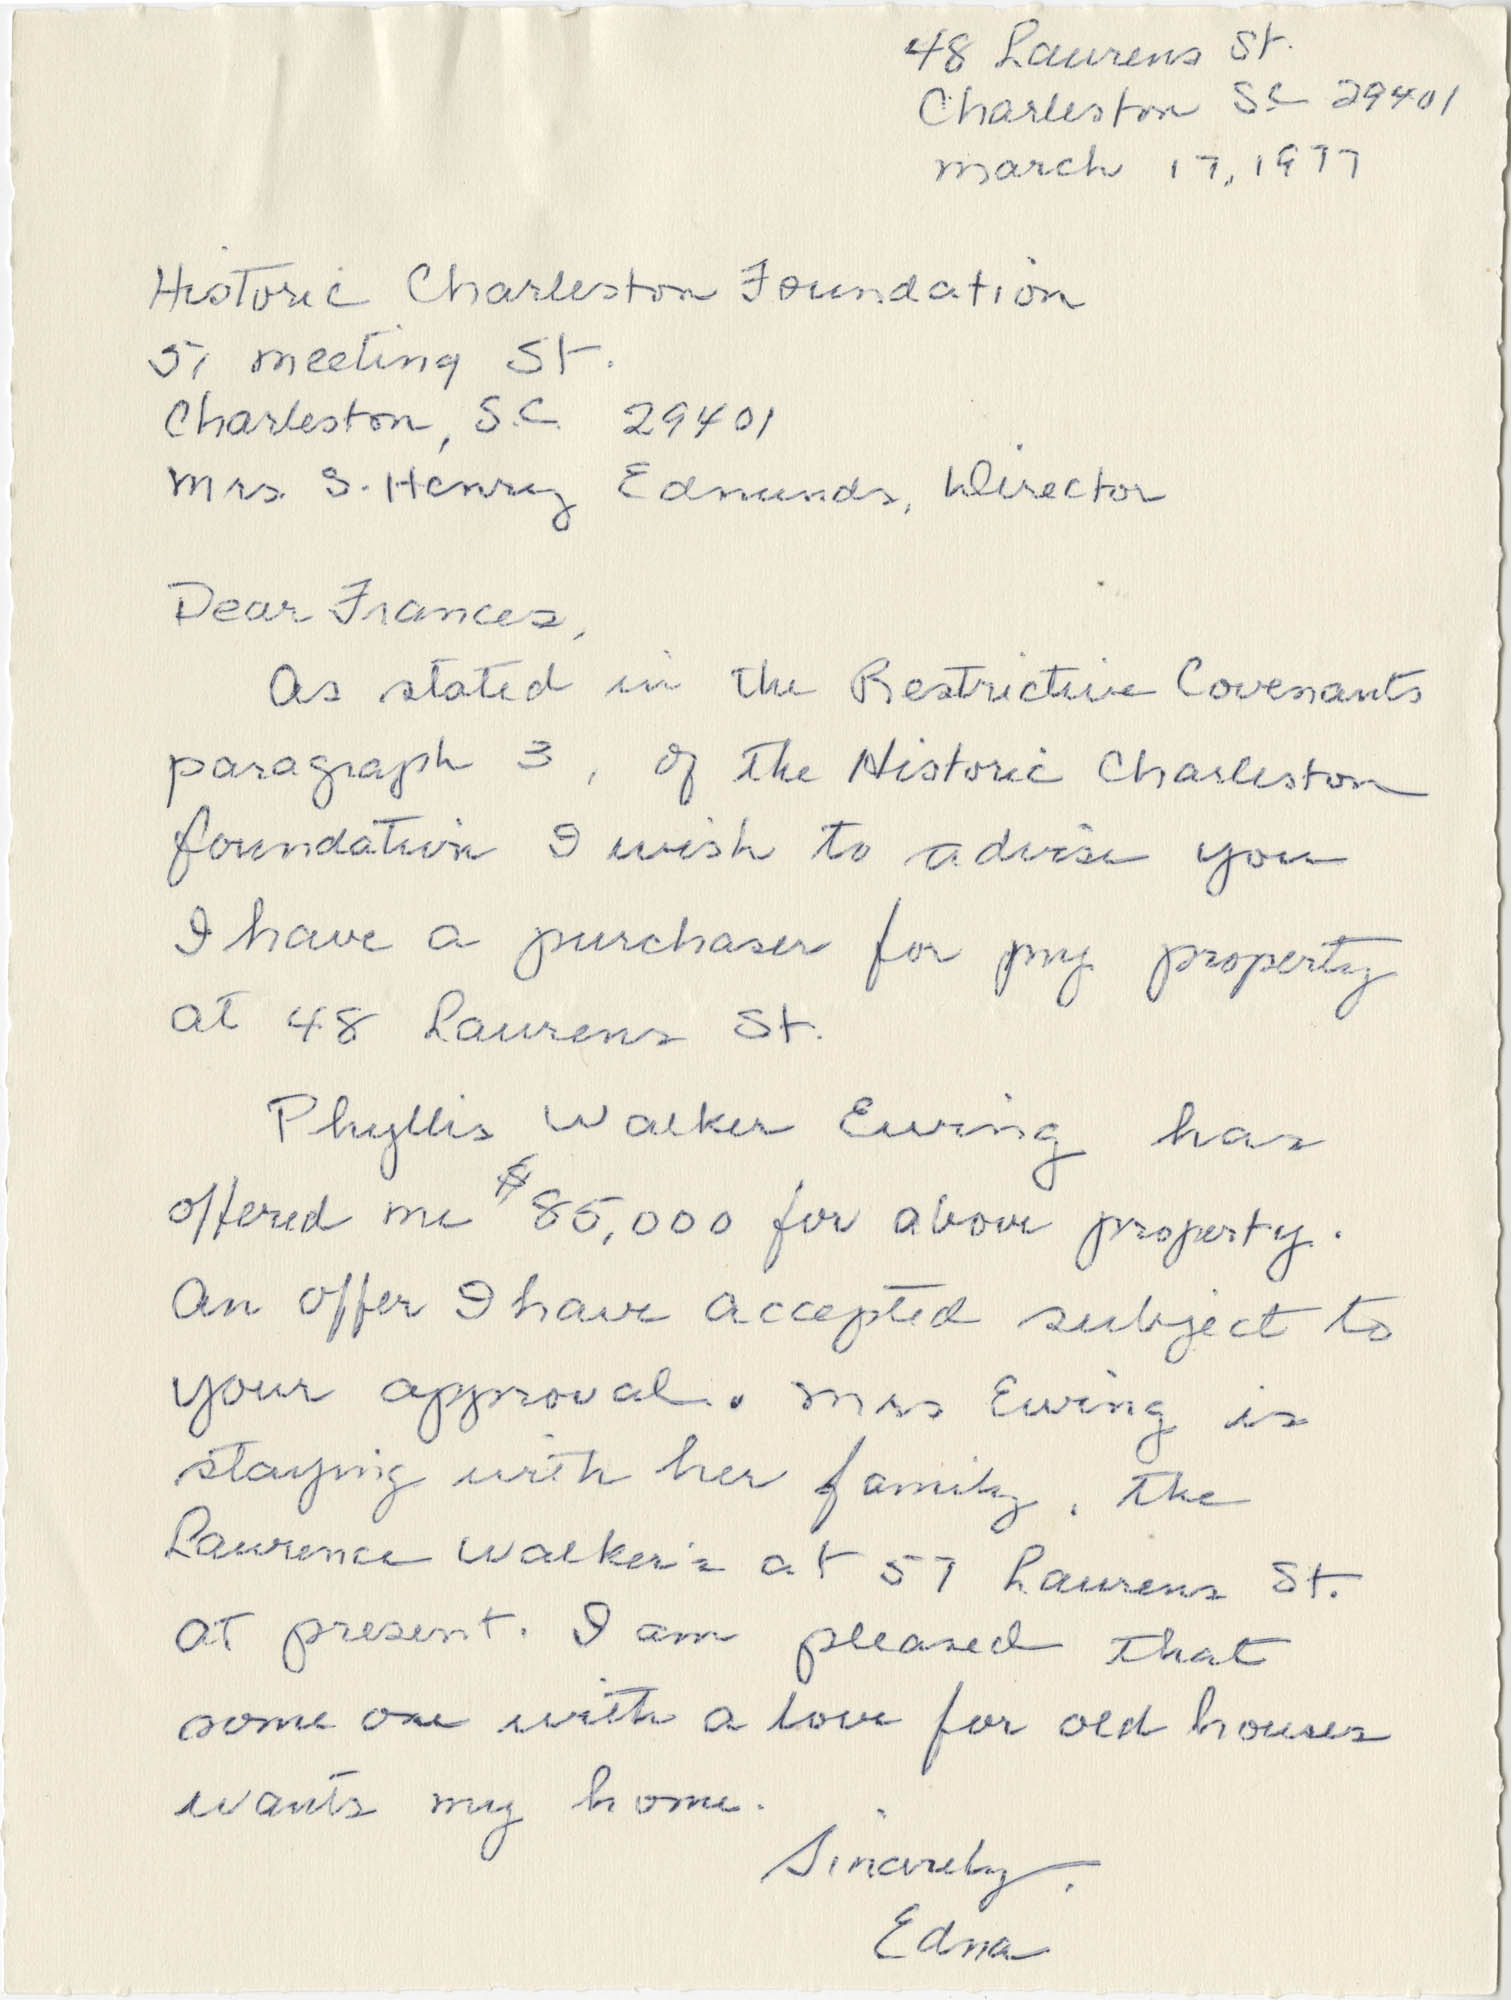 Letter from Edna (O'Hear) to Frances (Edmunds)